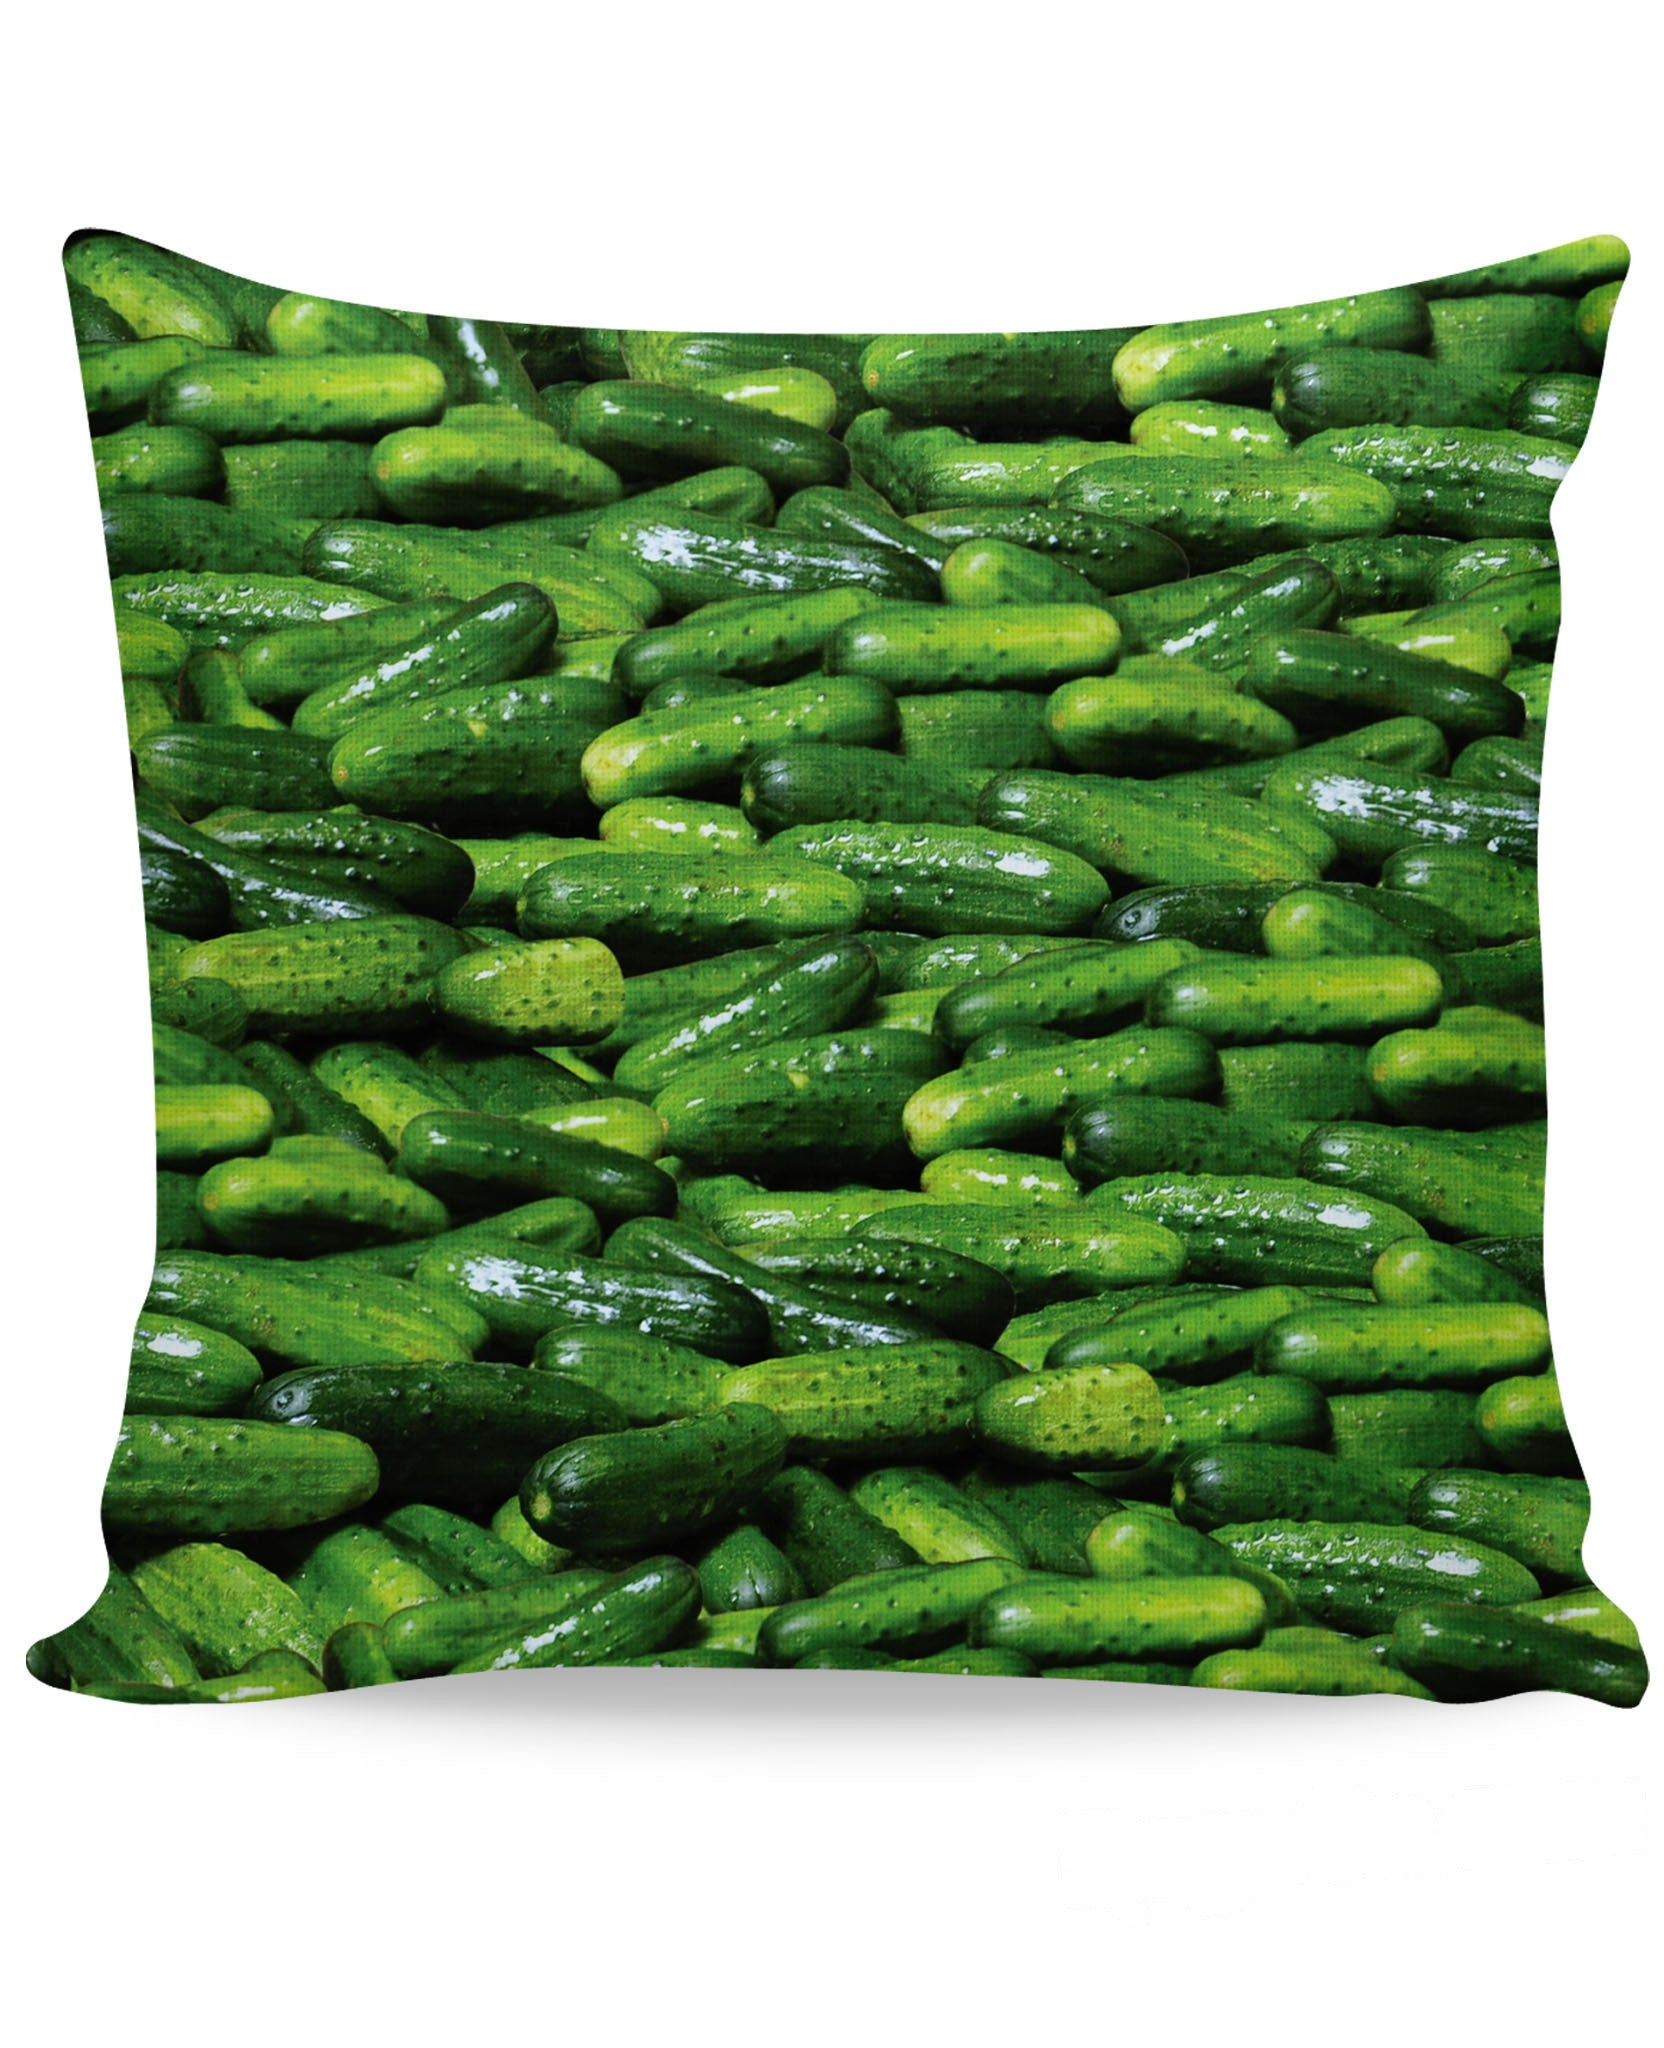 Pickles Couch Pillow